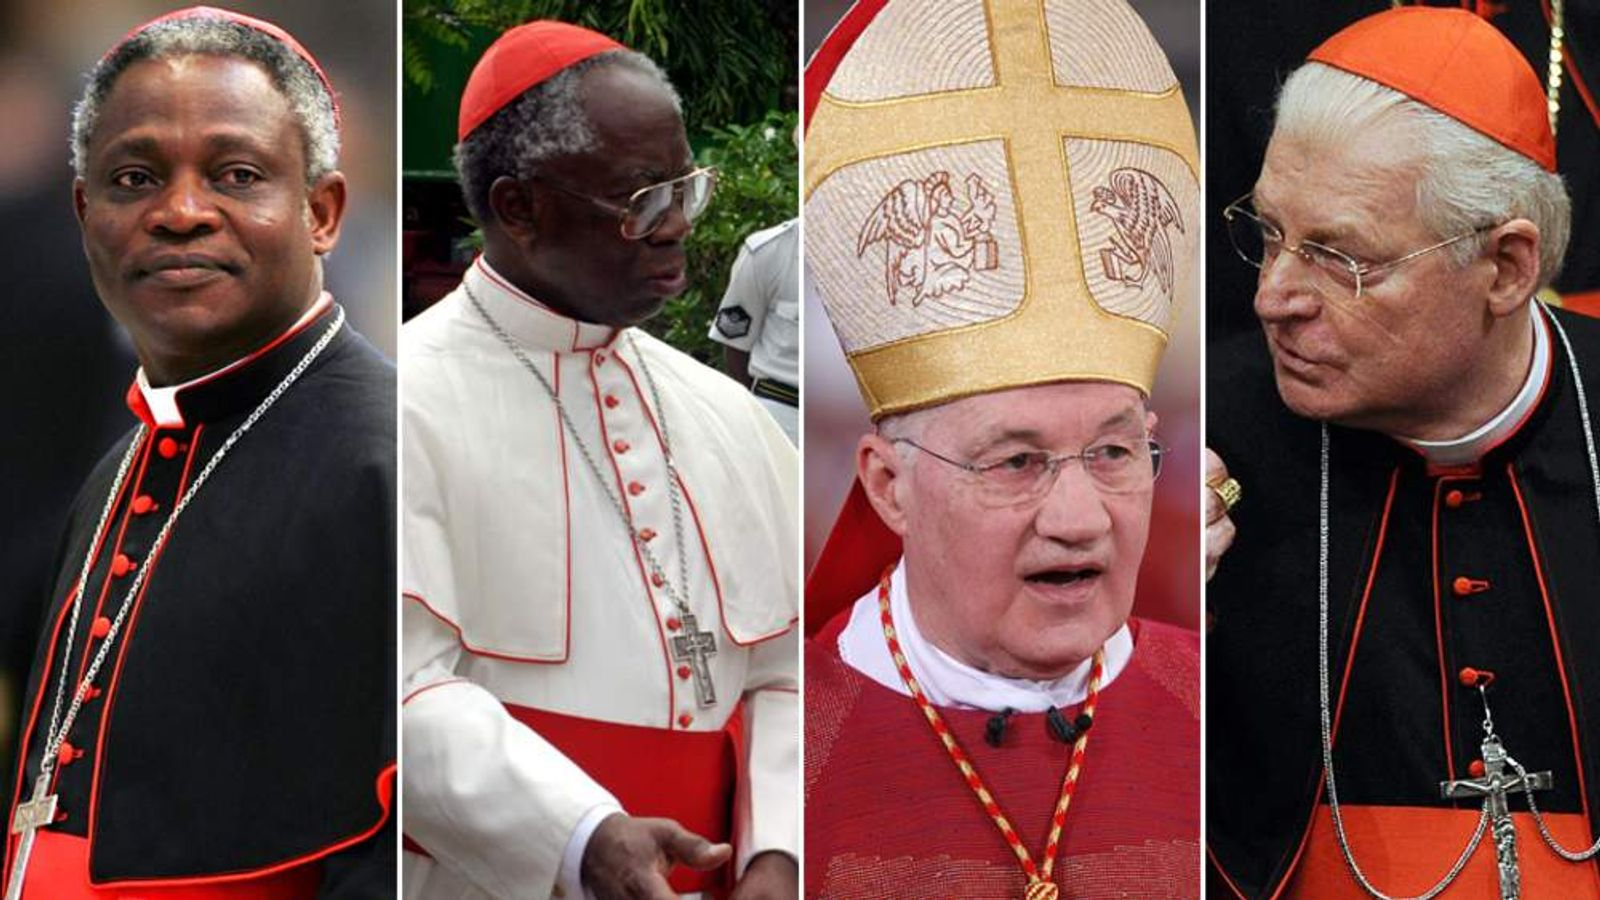 Pope Contenders (l-r) Peter Turkson Francis Arinze Marc Ouellet Angelo Scola